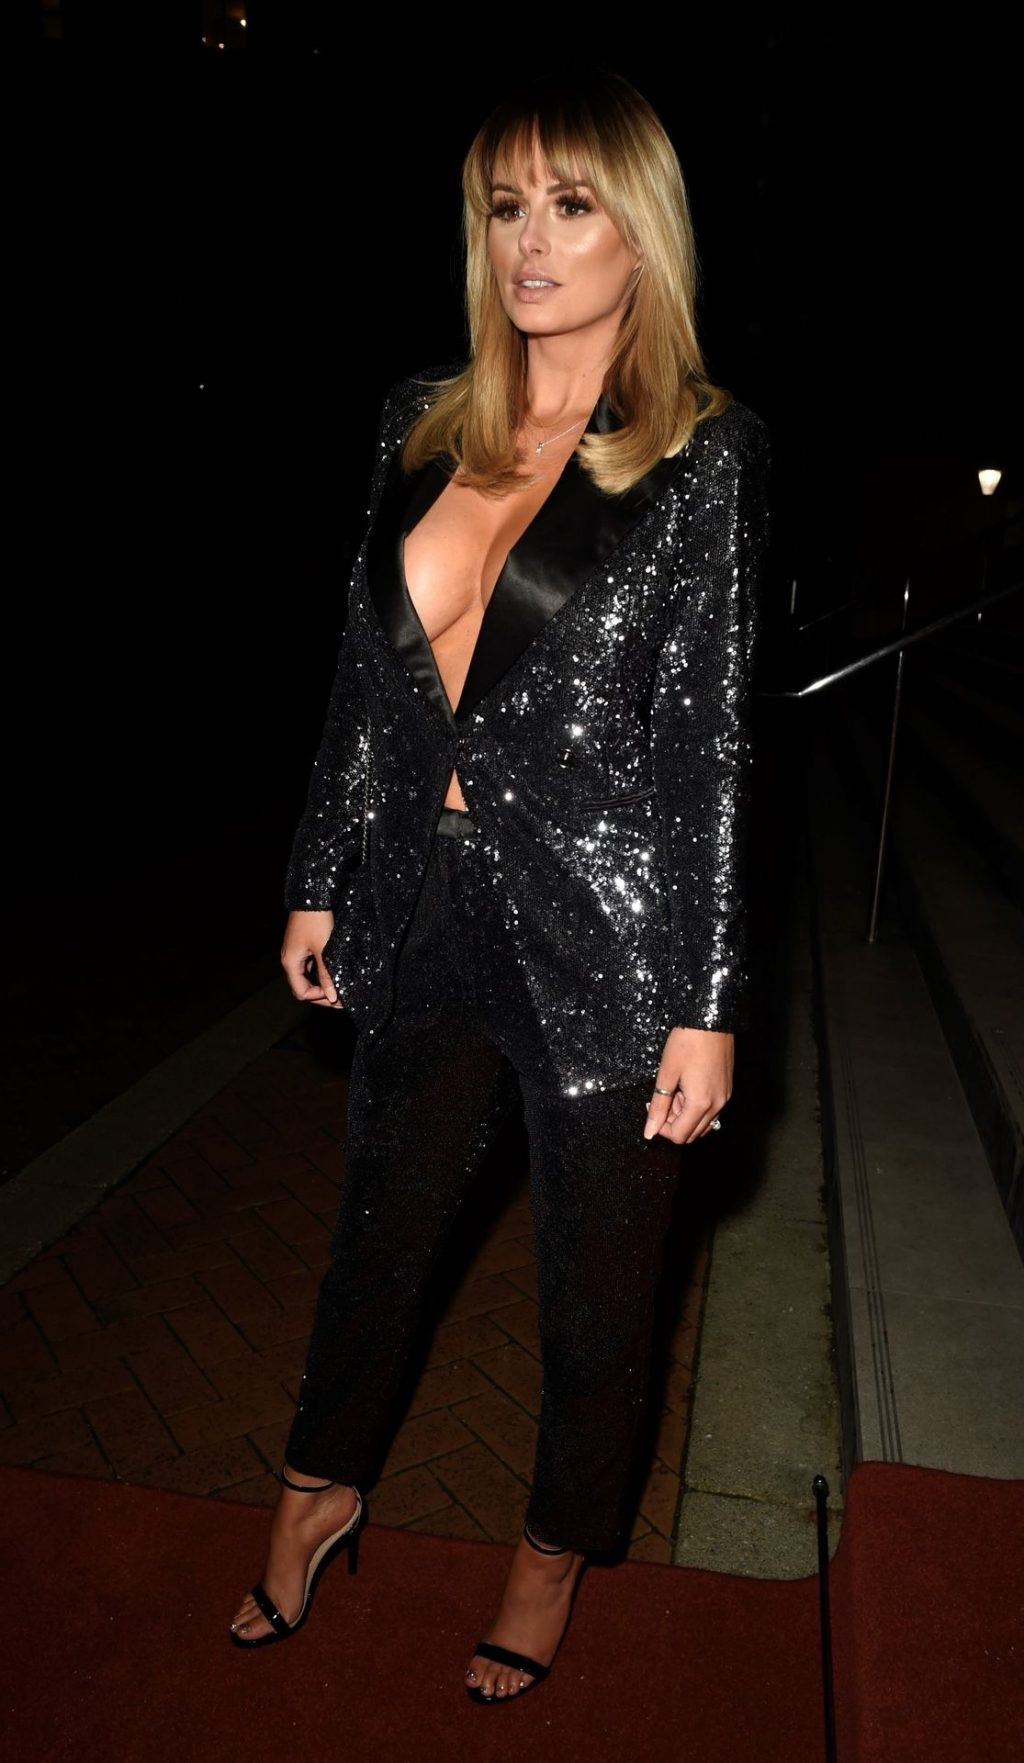 Rhian Sugden Shows Her Cleavage While Arriving at Mirror Ball at The Lowry Hotel (15 Photos)